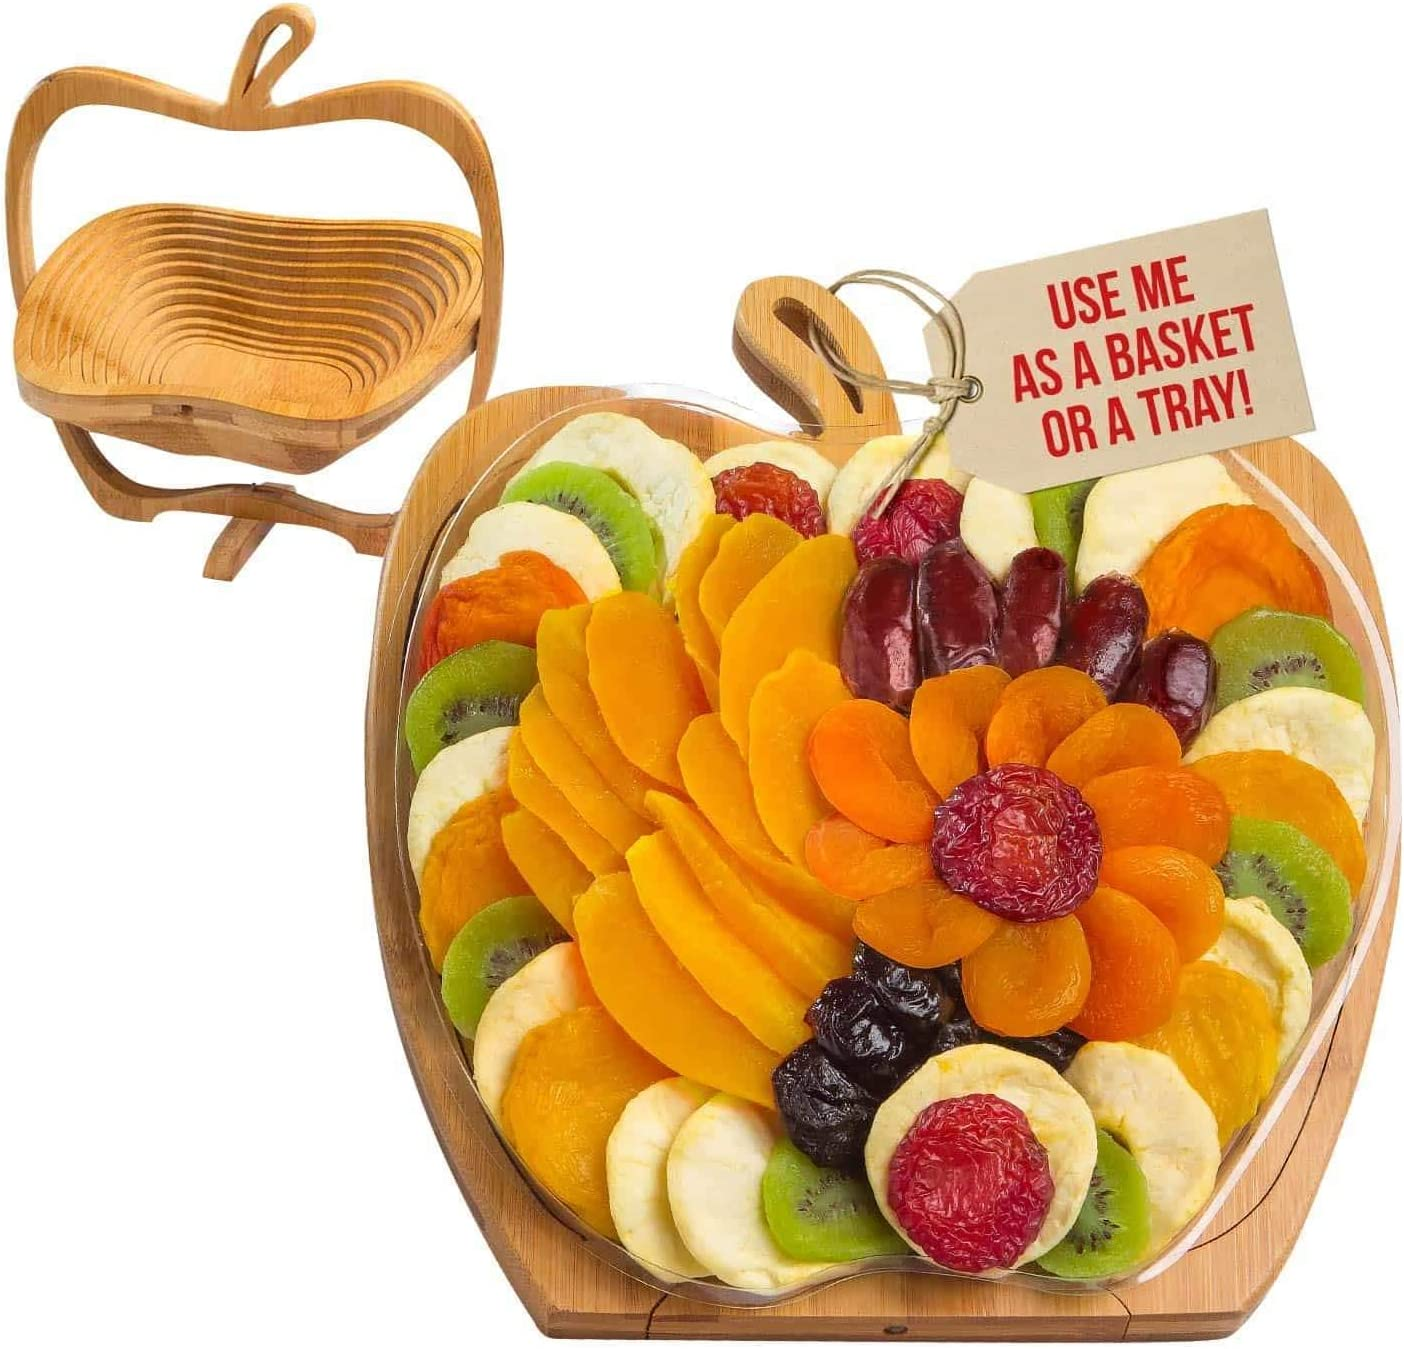 2 in 1 Creative Fruit Basket can be Turned into a Snack Tray to Store Nuts and Food Storage Boxes. Gifts for Family and Friends (Without Fruit Nuts)